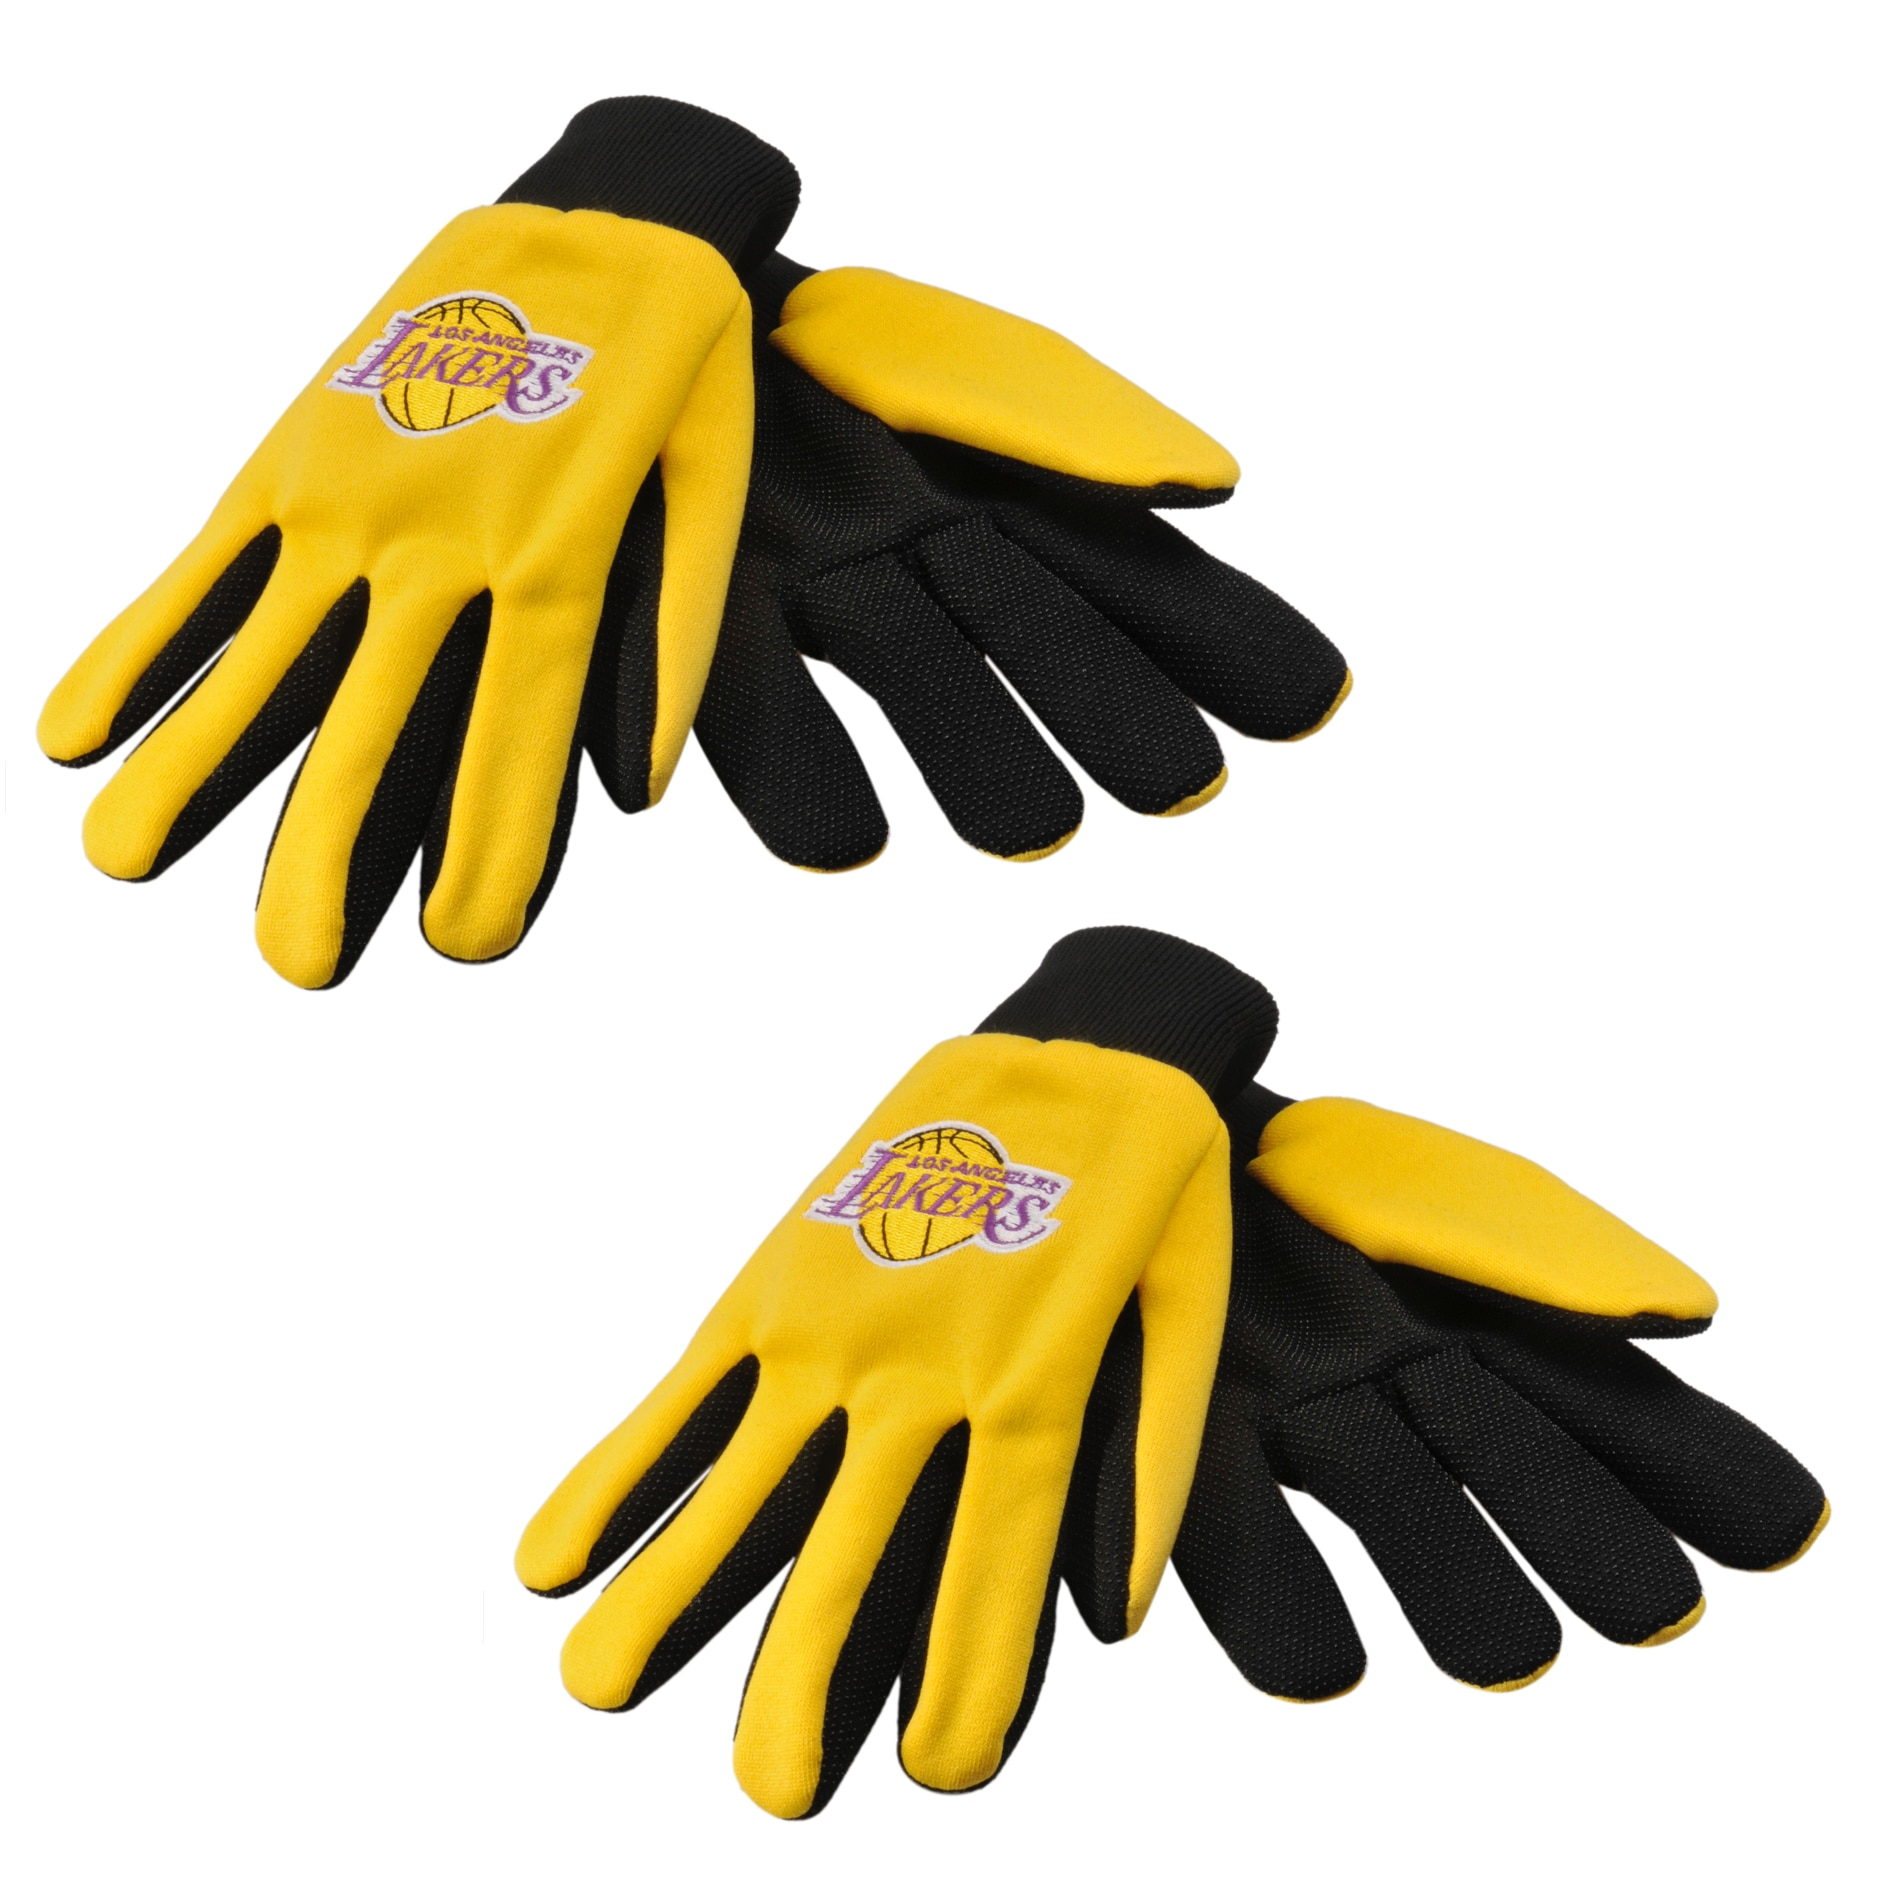 Los Angeles Lakers Two-tone Gloves (Set of 2 Pair)